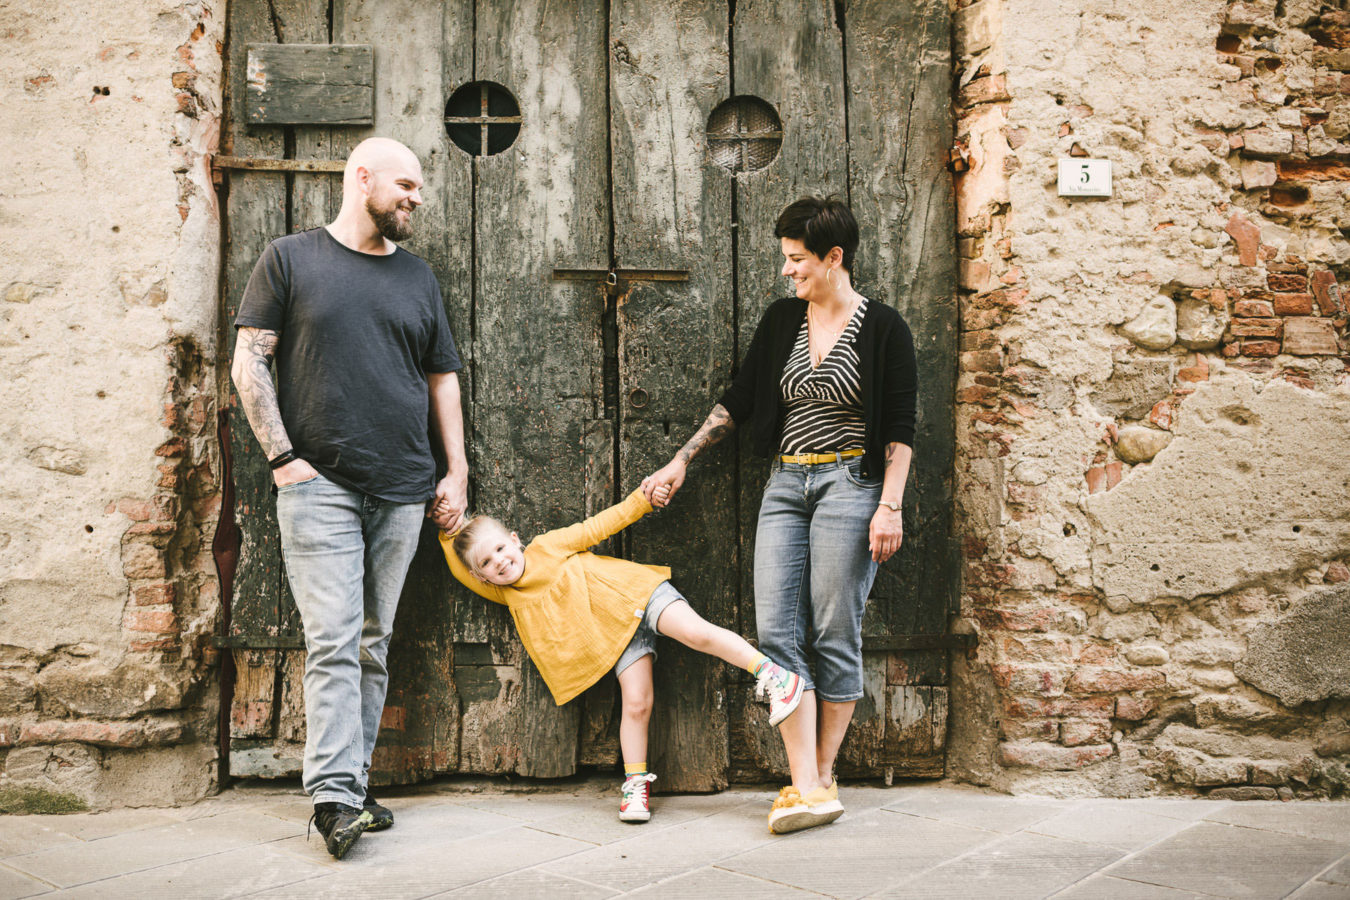 Sweet and funny family holidays photos in the historical town of Peccioli in Tuscany